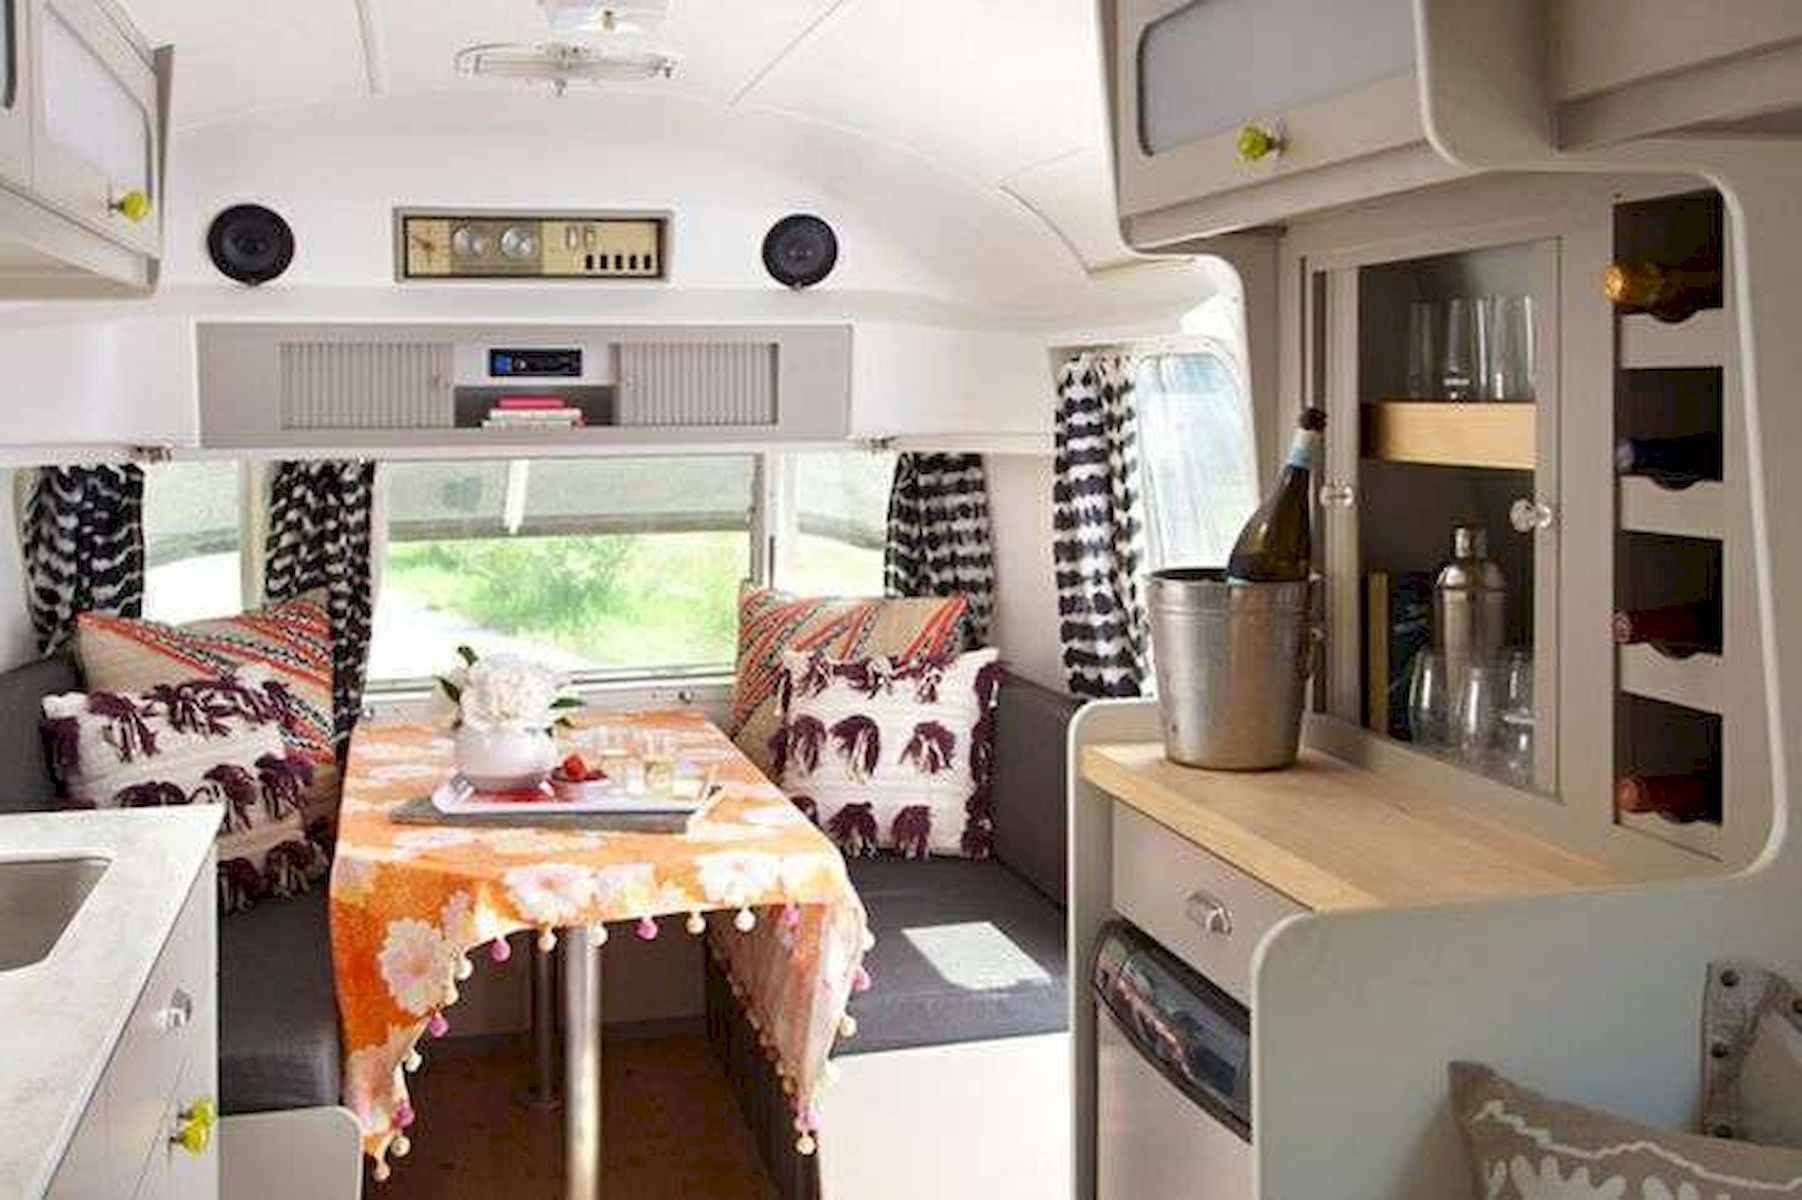 70 Stunning RV Living Camper Room Ideas Decorations Make Your Summer Awesome (66)